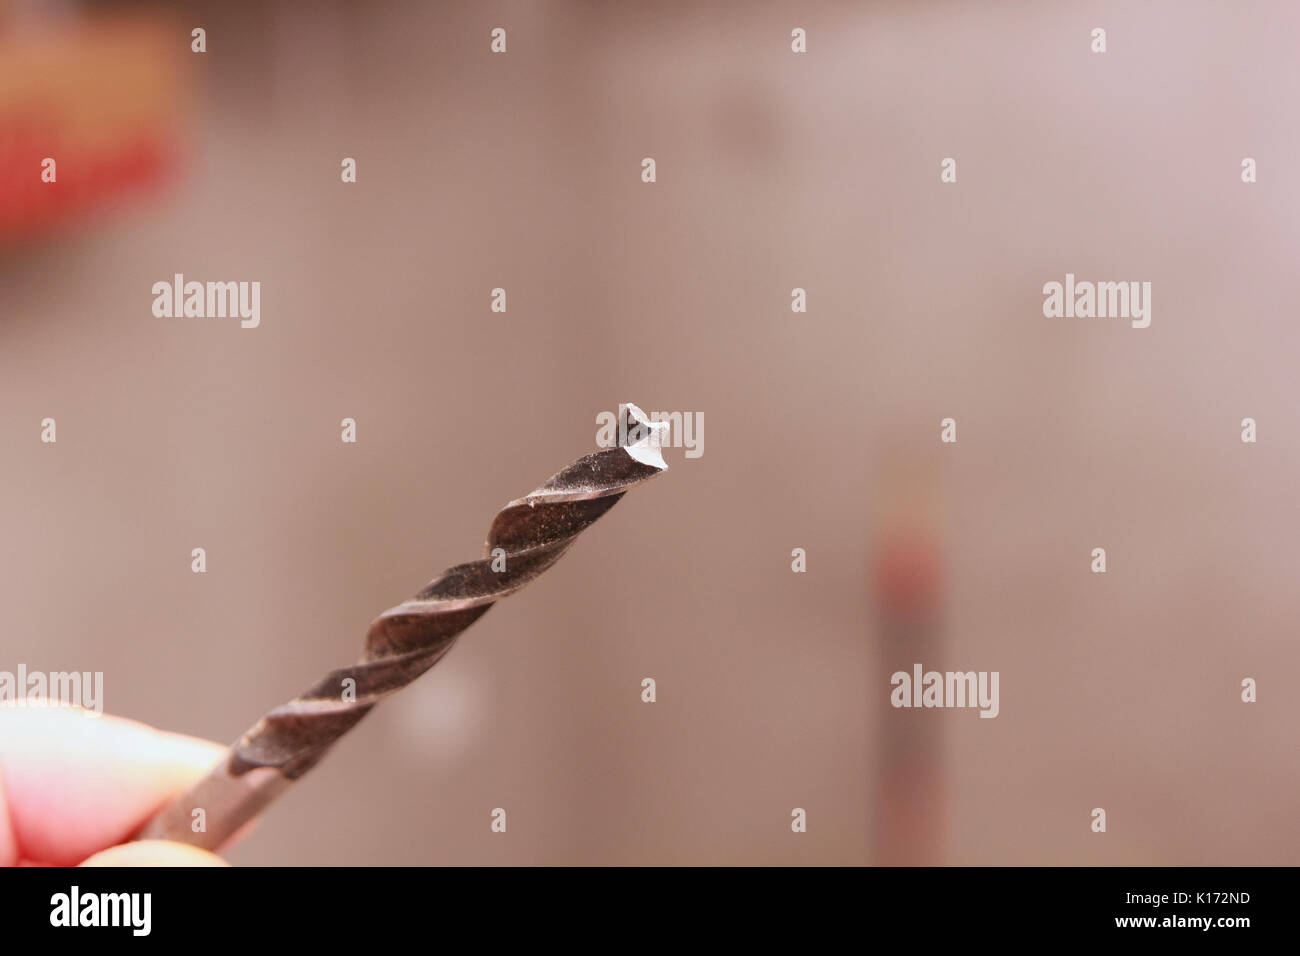 Drill on hand tool - Stock Image